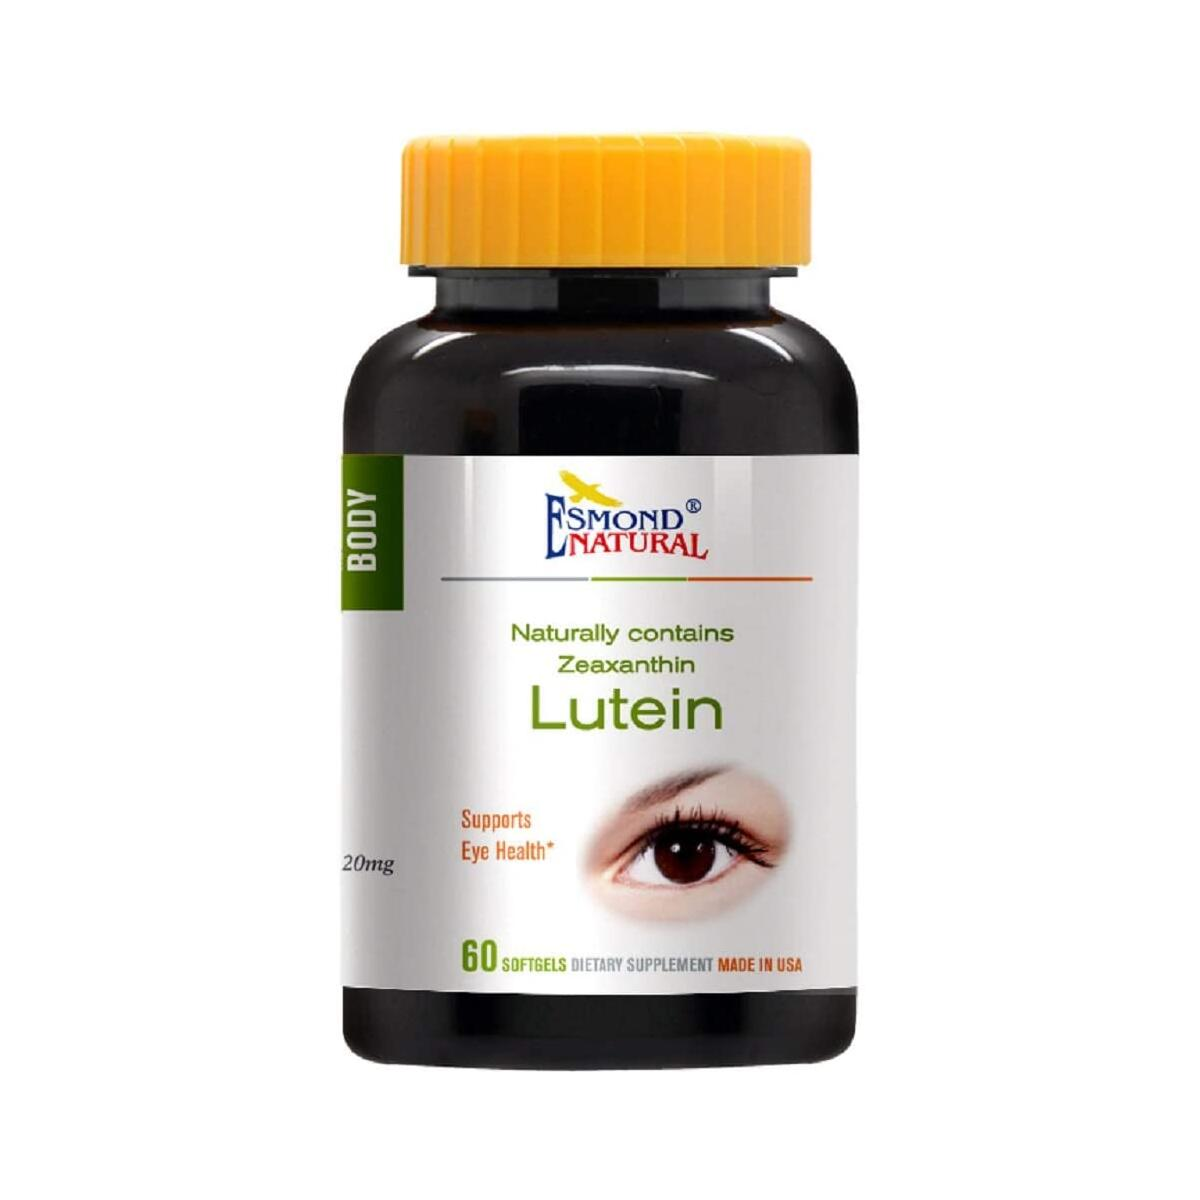 (3 Count, 10% Off) Esmond Natural: Lutein (Naturally Contains Zeaznthin, Supports Eye Health), GMP, Natural Product Assn Certified, Made in USA-20mg, 180 Softgels